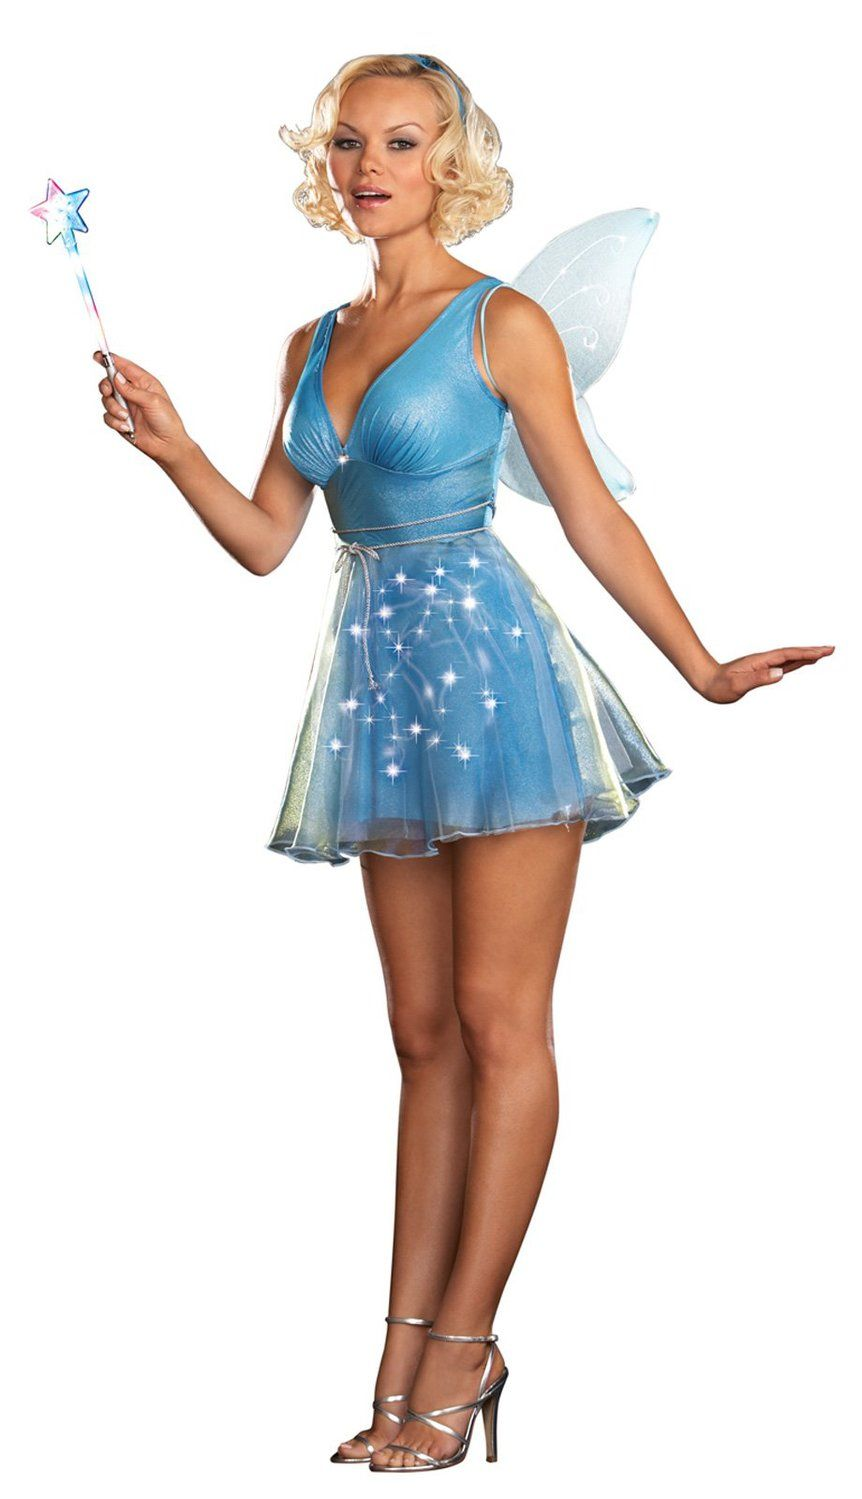 Fairy Godmother Costume  sc 1 st  Pinterest & Fairy Godmother Costume | Costume party! | Pinterest | Fairy ...